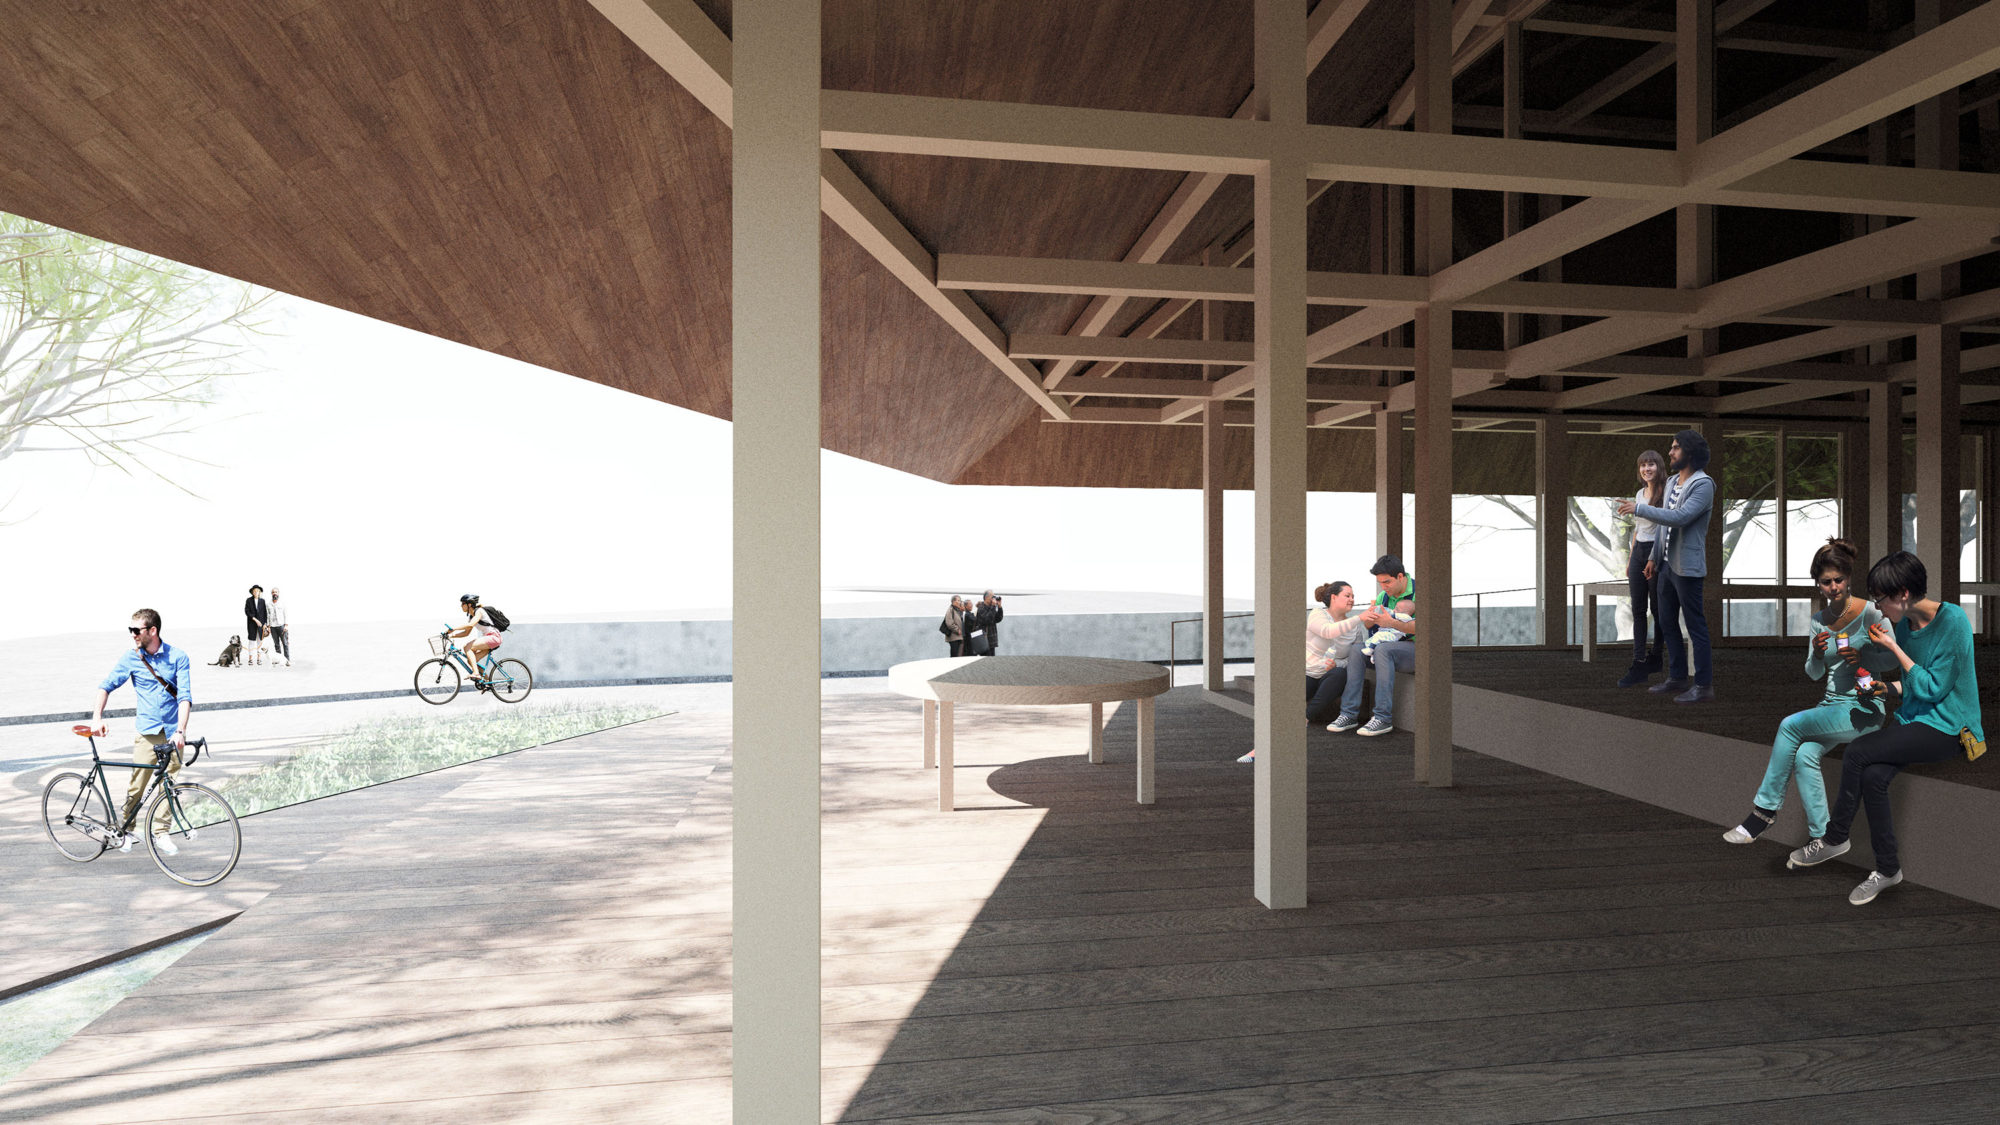 Yawatahama Oshima Community House Competition by Mosaic Design